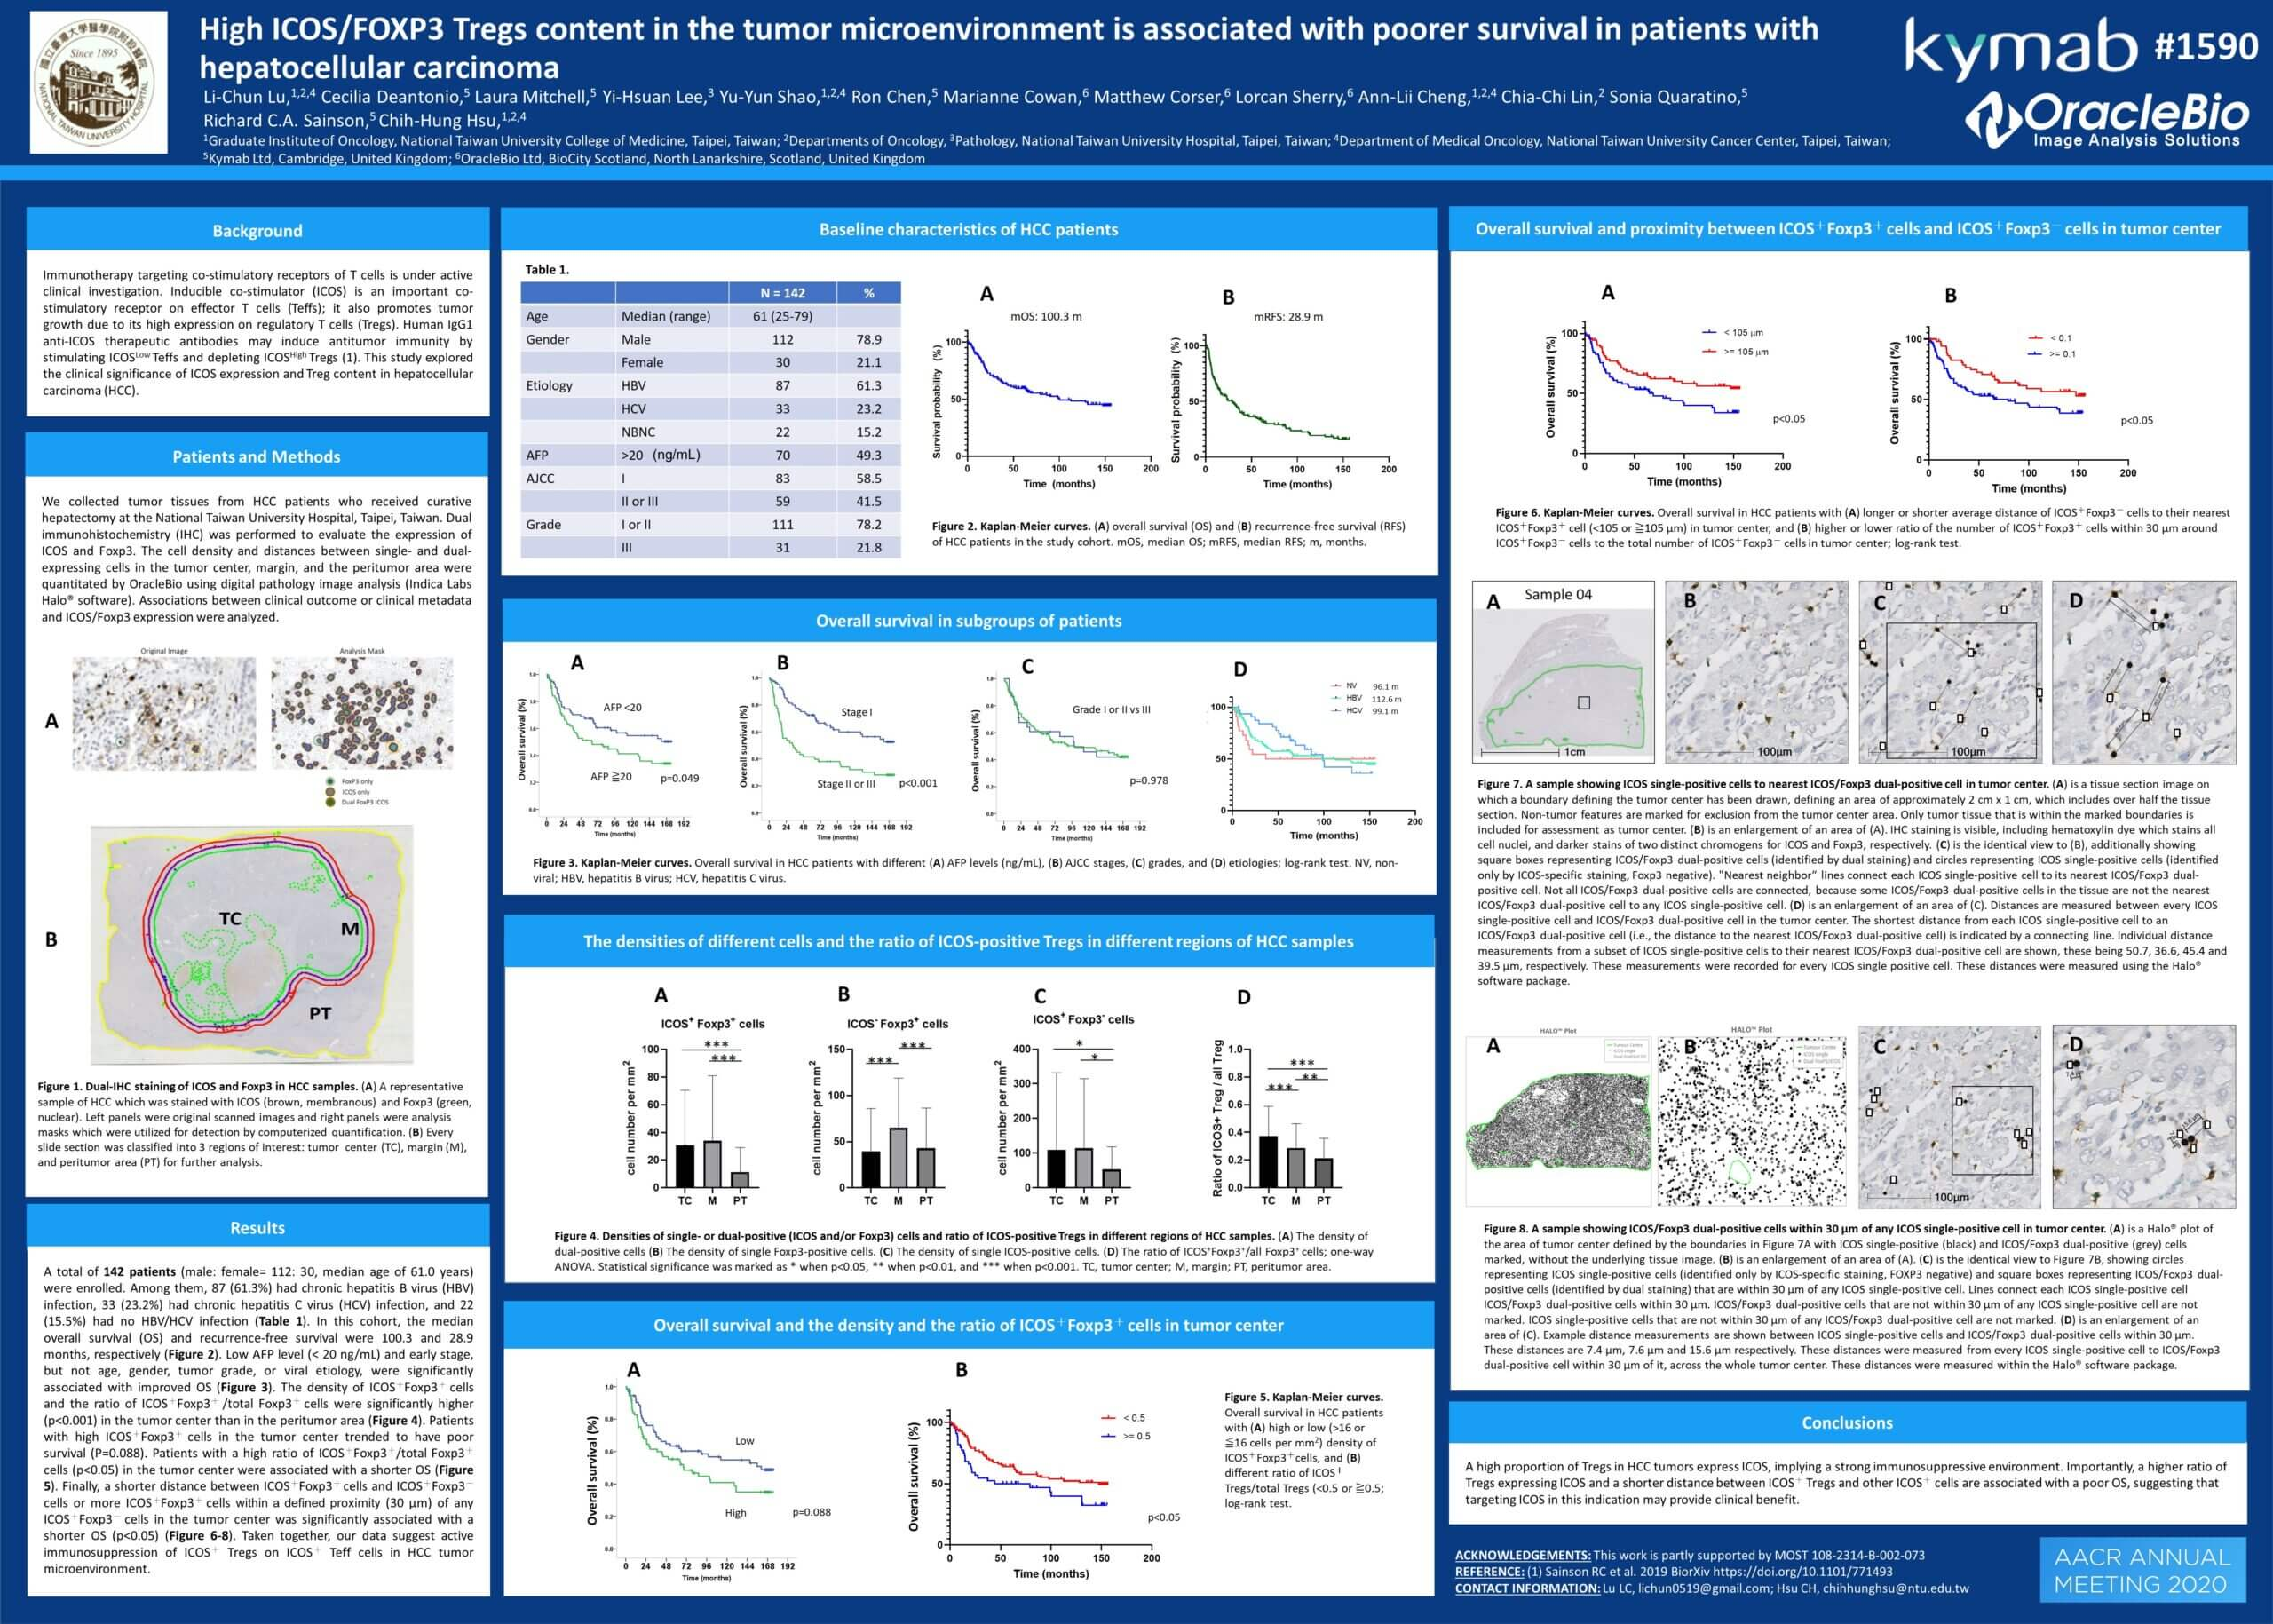 High ICOS/FOXP3 Tregs Content in the Tumor Microenvironment is Associated with Poorer Survival in Patients with Hepatocellular Carcinoma